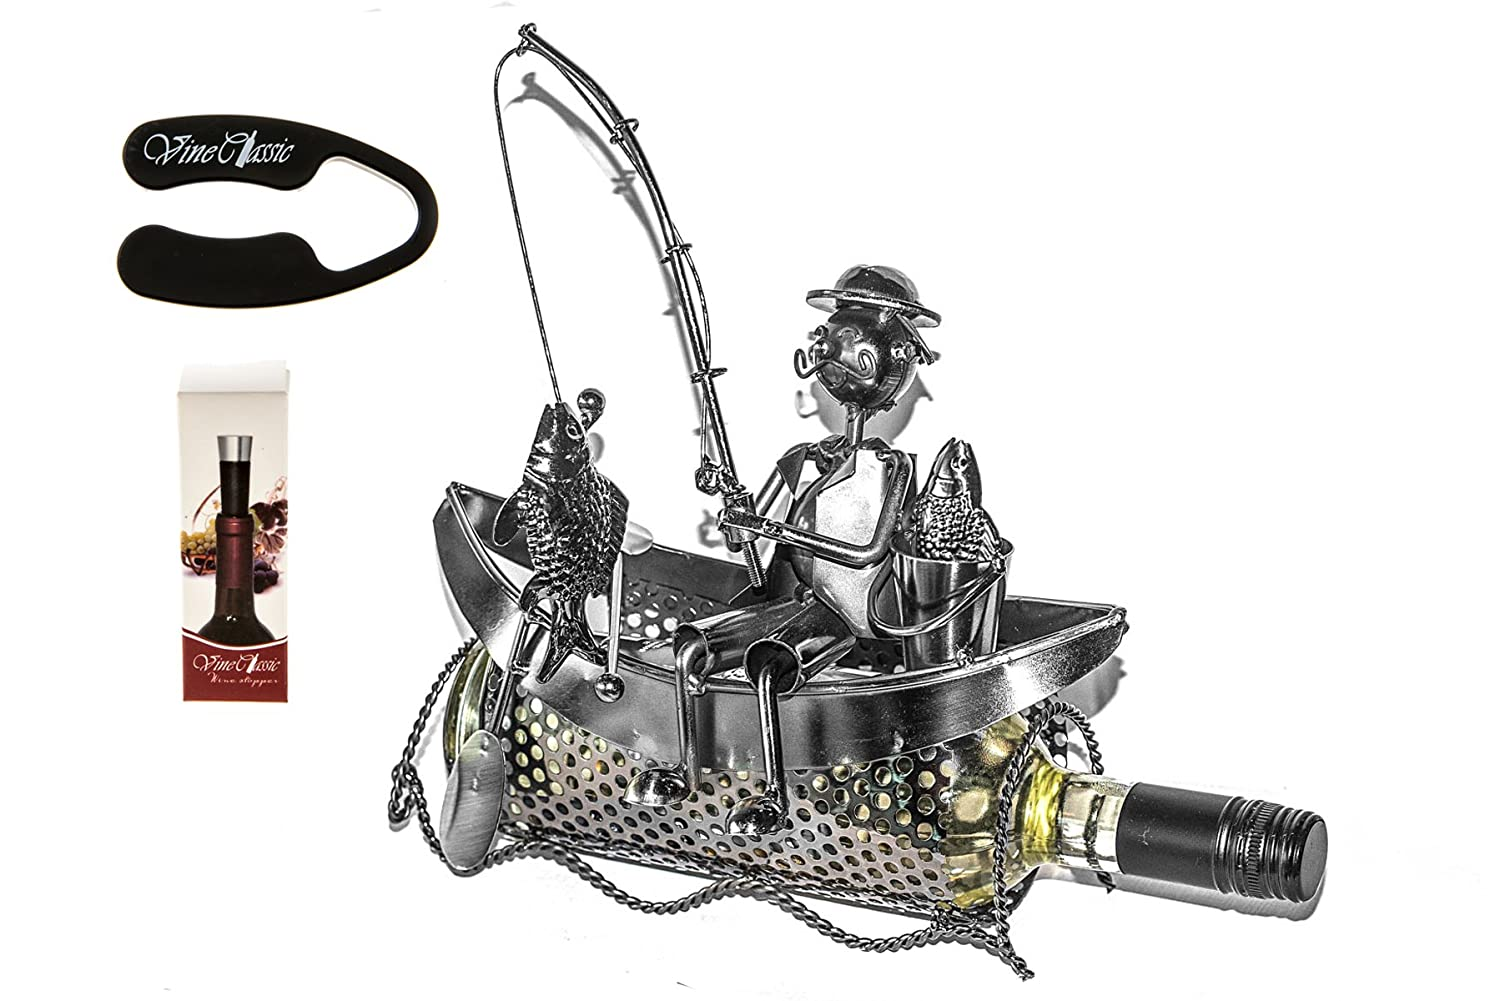 Fabulous Fisherman Sitting on Boat with a Fishing Rod Trying to Catch Some Fish , Wine Bottle Holder Presenter Plus a Wine Foil Cutter and a Wine Vacuum Stopper Upscale Innovations 5737